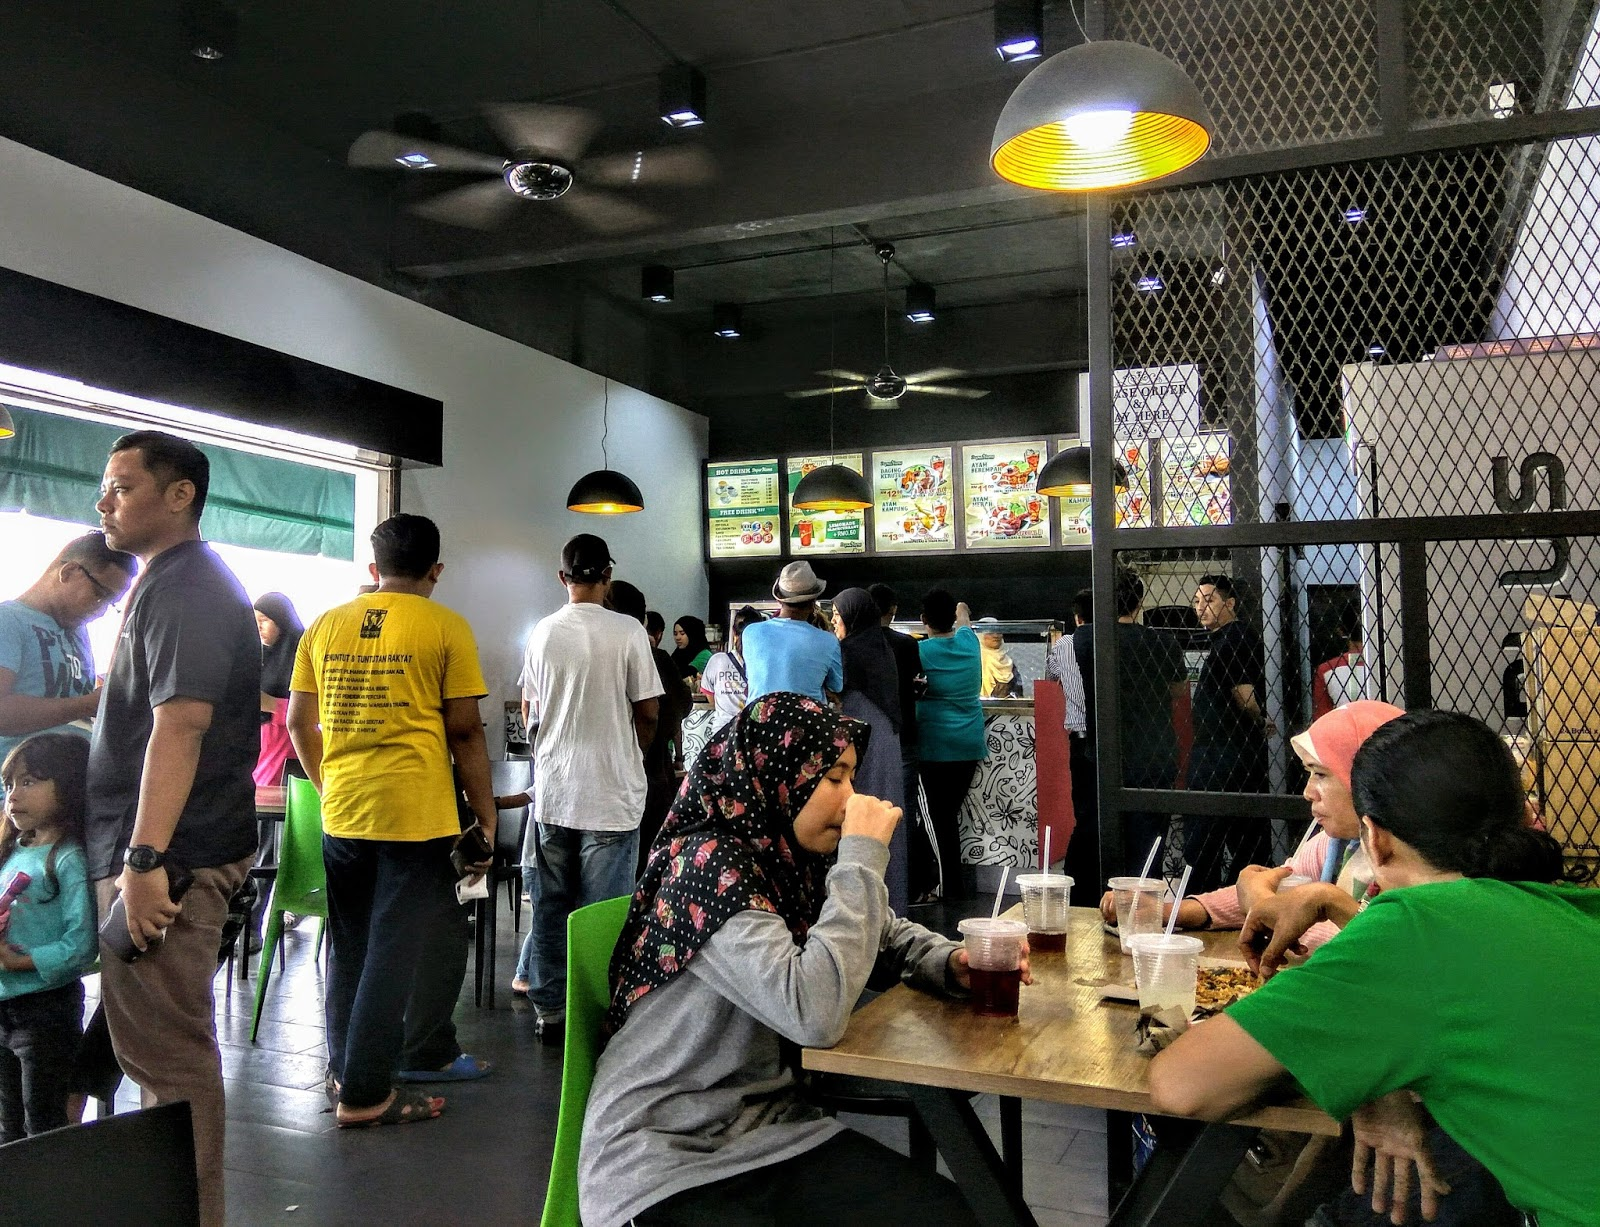 Look At The Queue Lunch Hour One Has To Submit Their Orders And Pay Counter First Before Lining Up Get Food They Do Have A Wide Variety Not